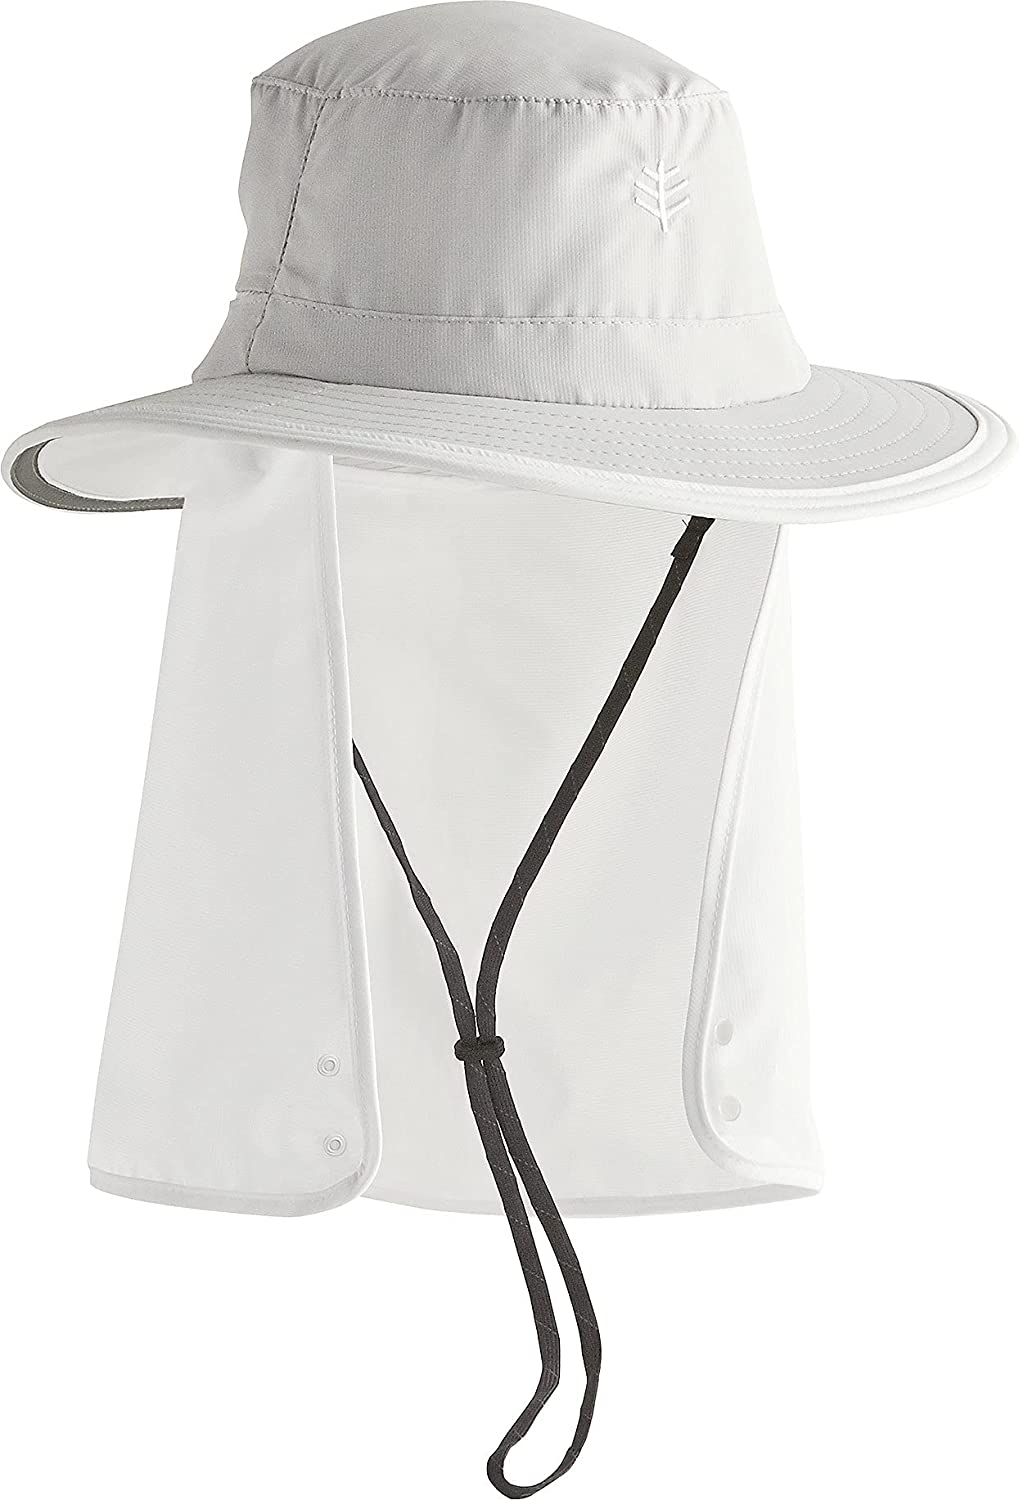 Classic Coolibar UPF 50+ Unisex Convertible Protective Cheap super special price Boating Sun - Hat